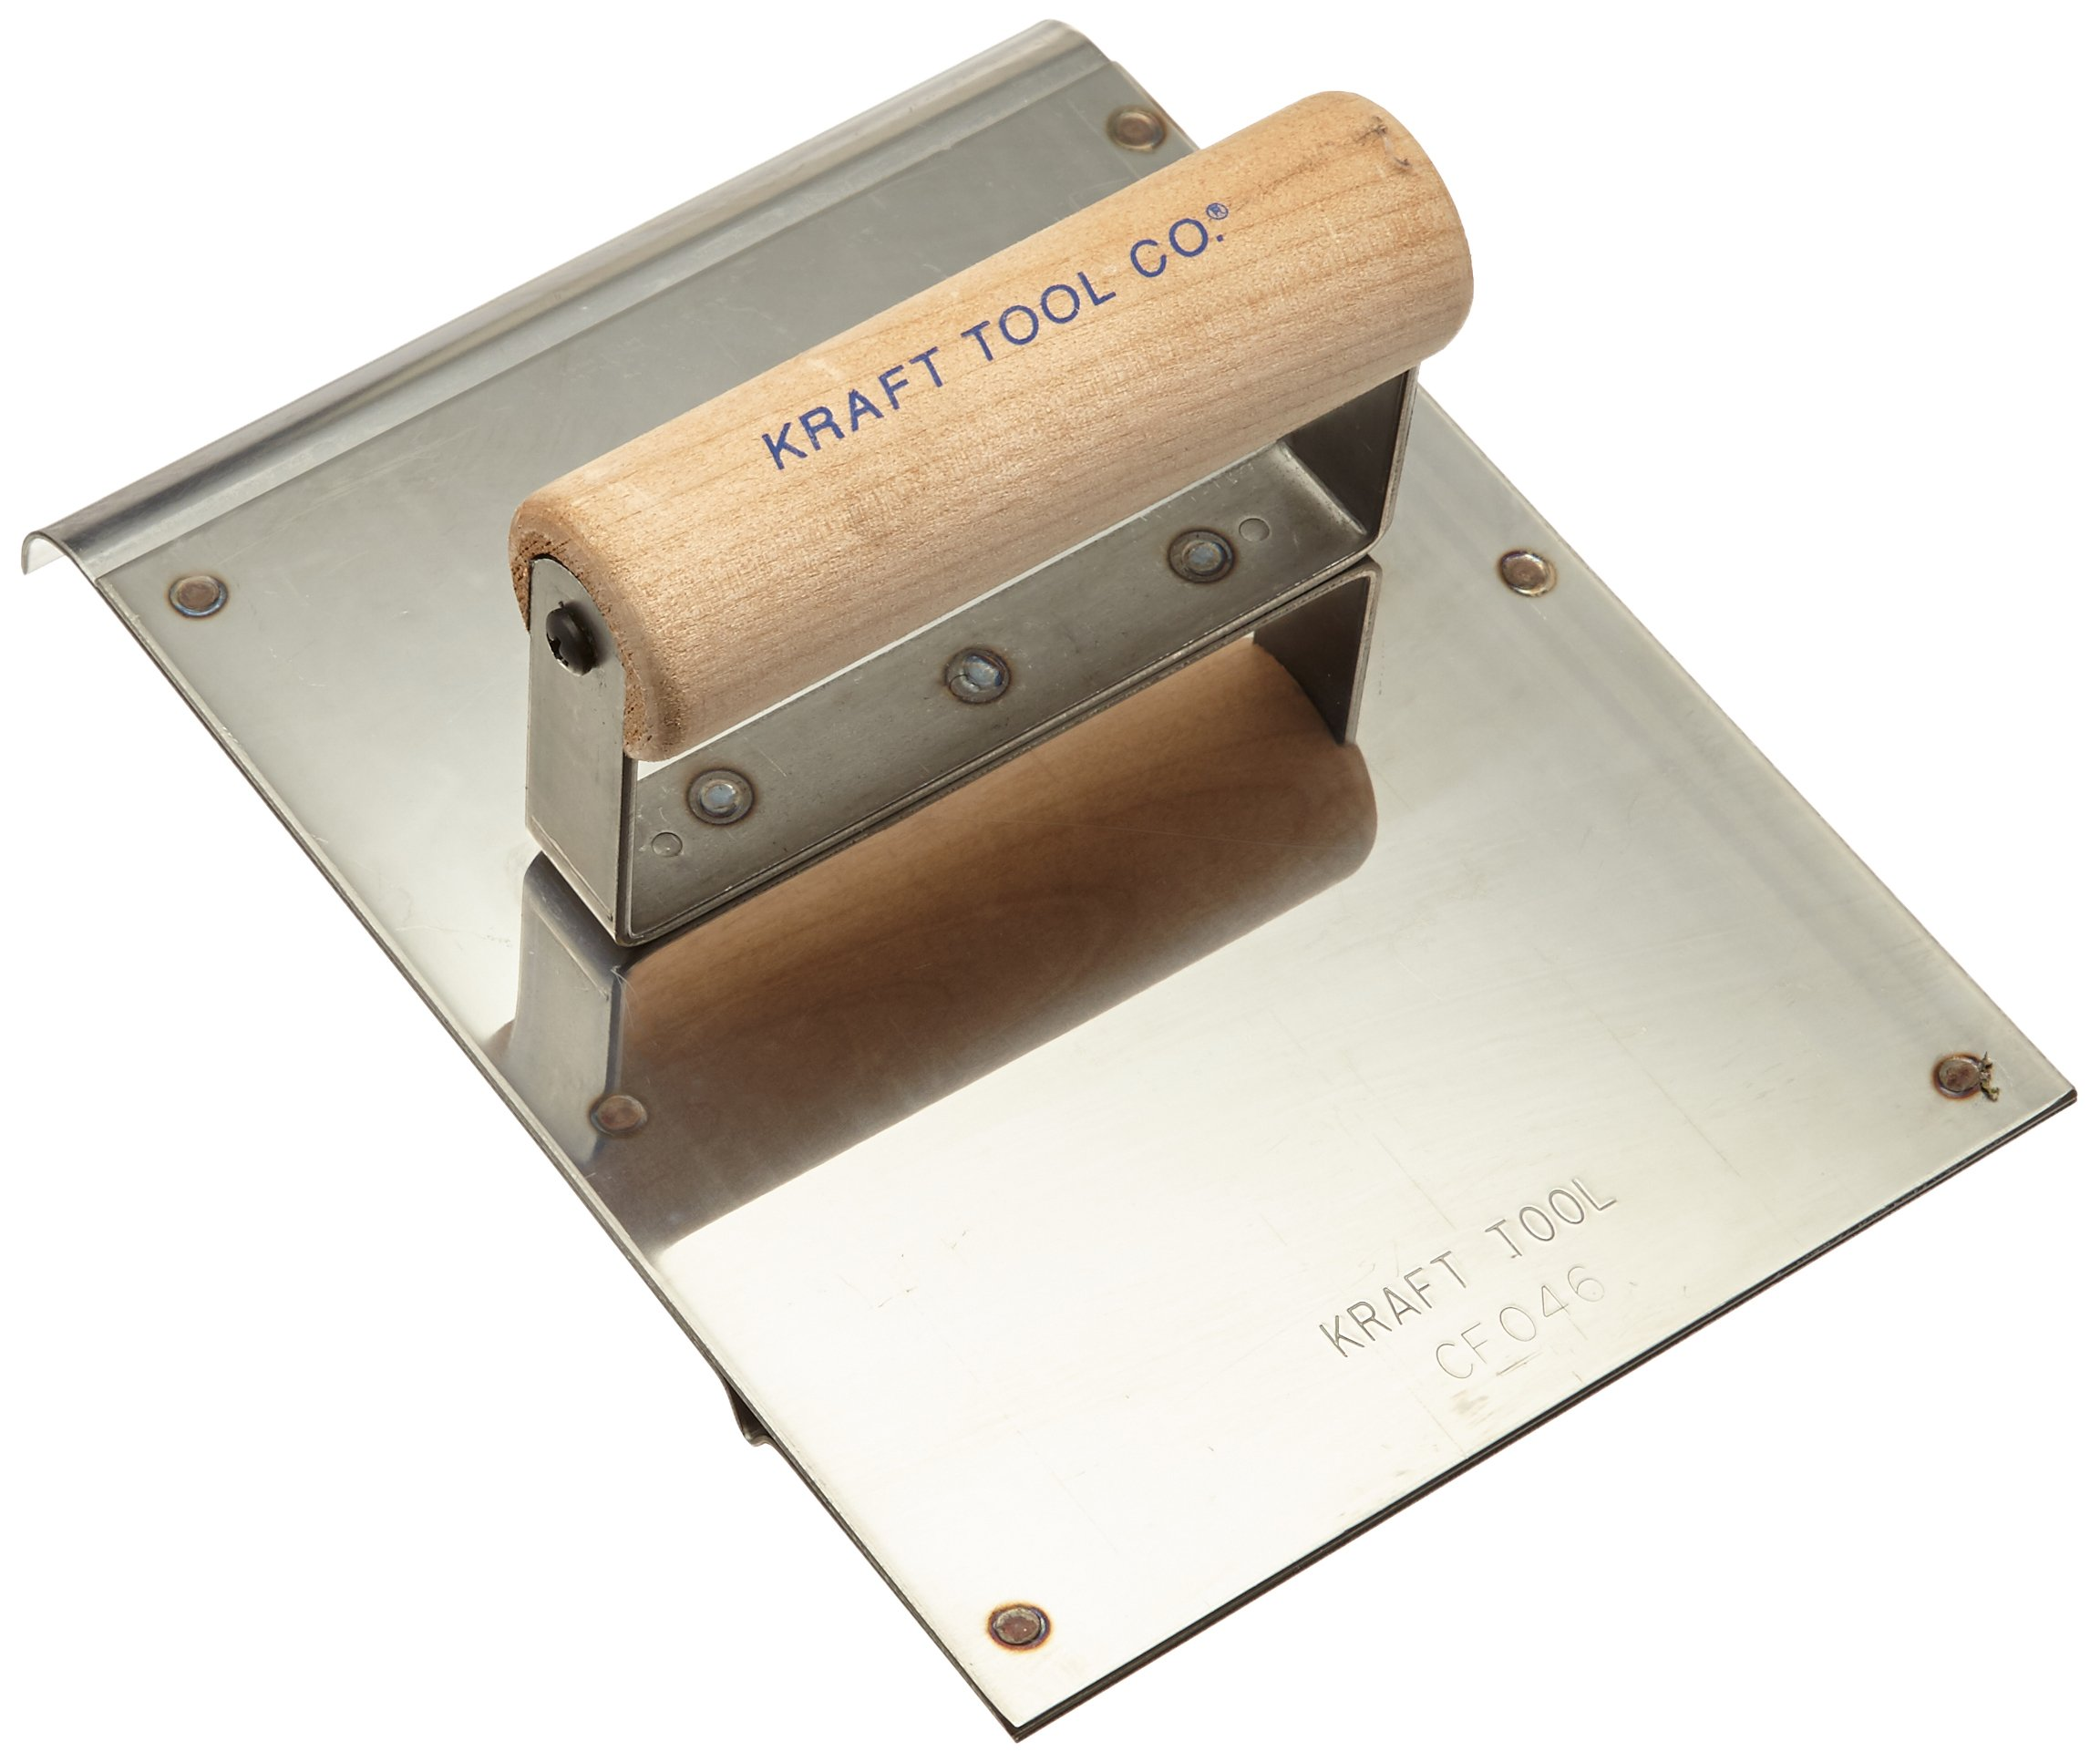 Kraft Tool CF046 Stainless Steel Hand Edger/Groover 1/2-Inch Radius with Wood Handle, 6 x 8-Inch